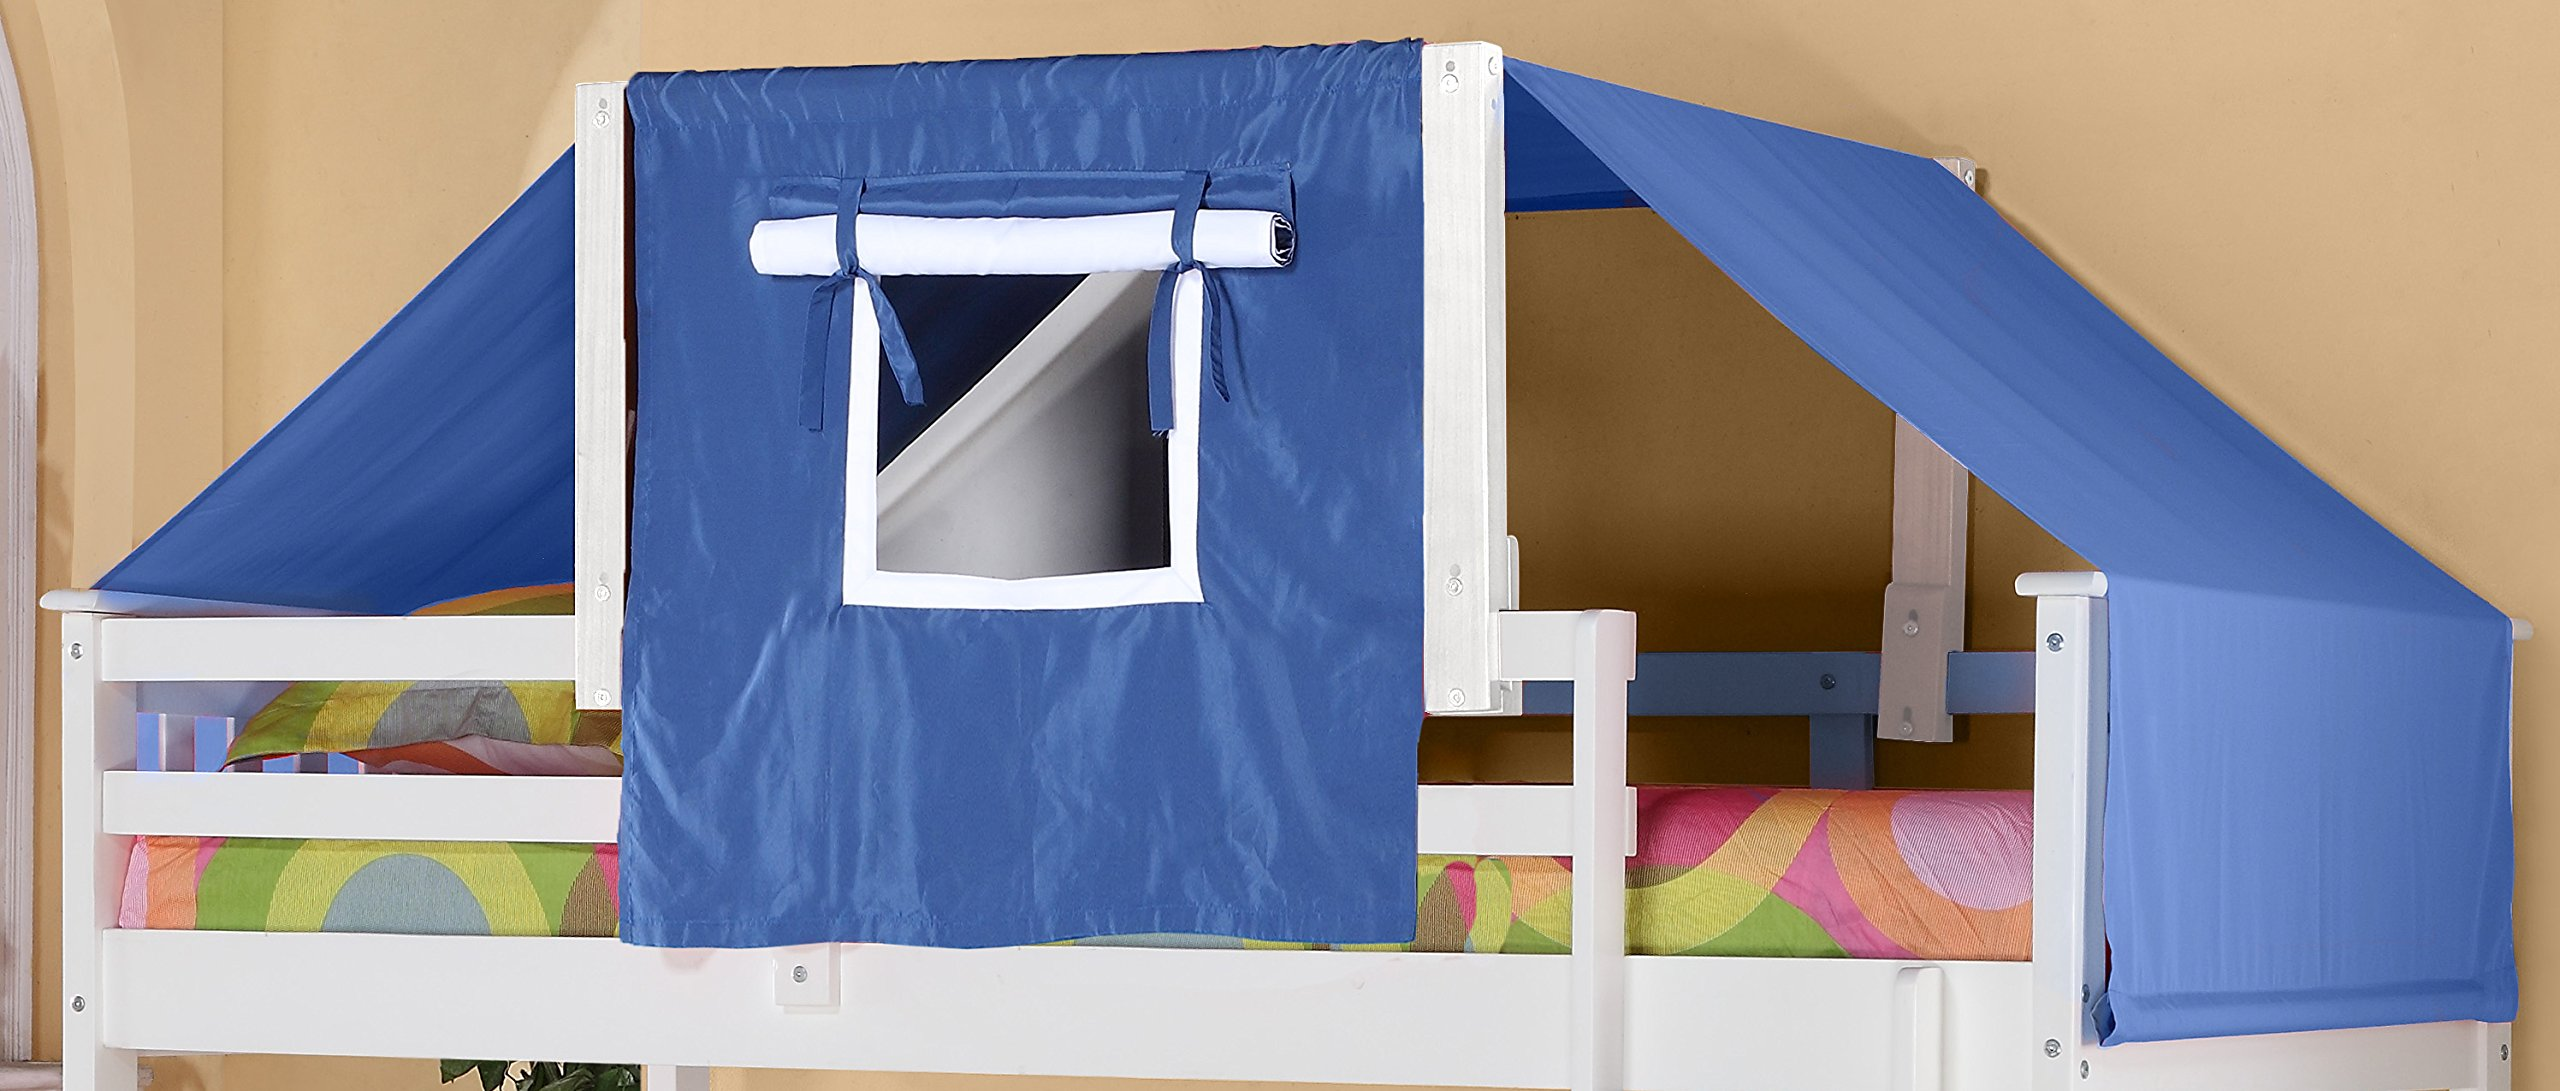 Donco Kids 755-W-Blue Tent Kit Accessory with Fabric, White/Blue